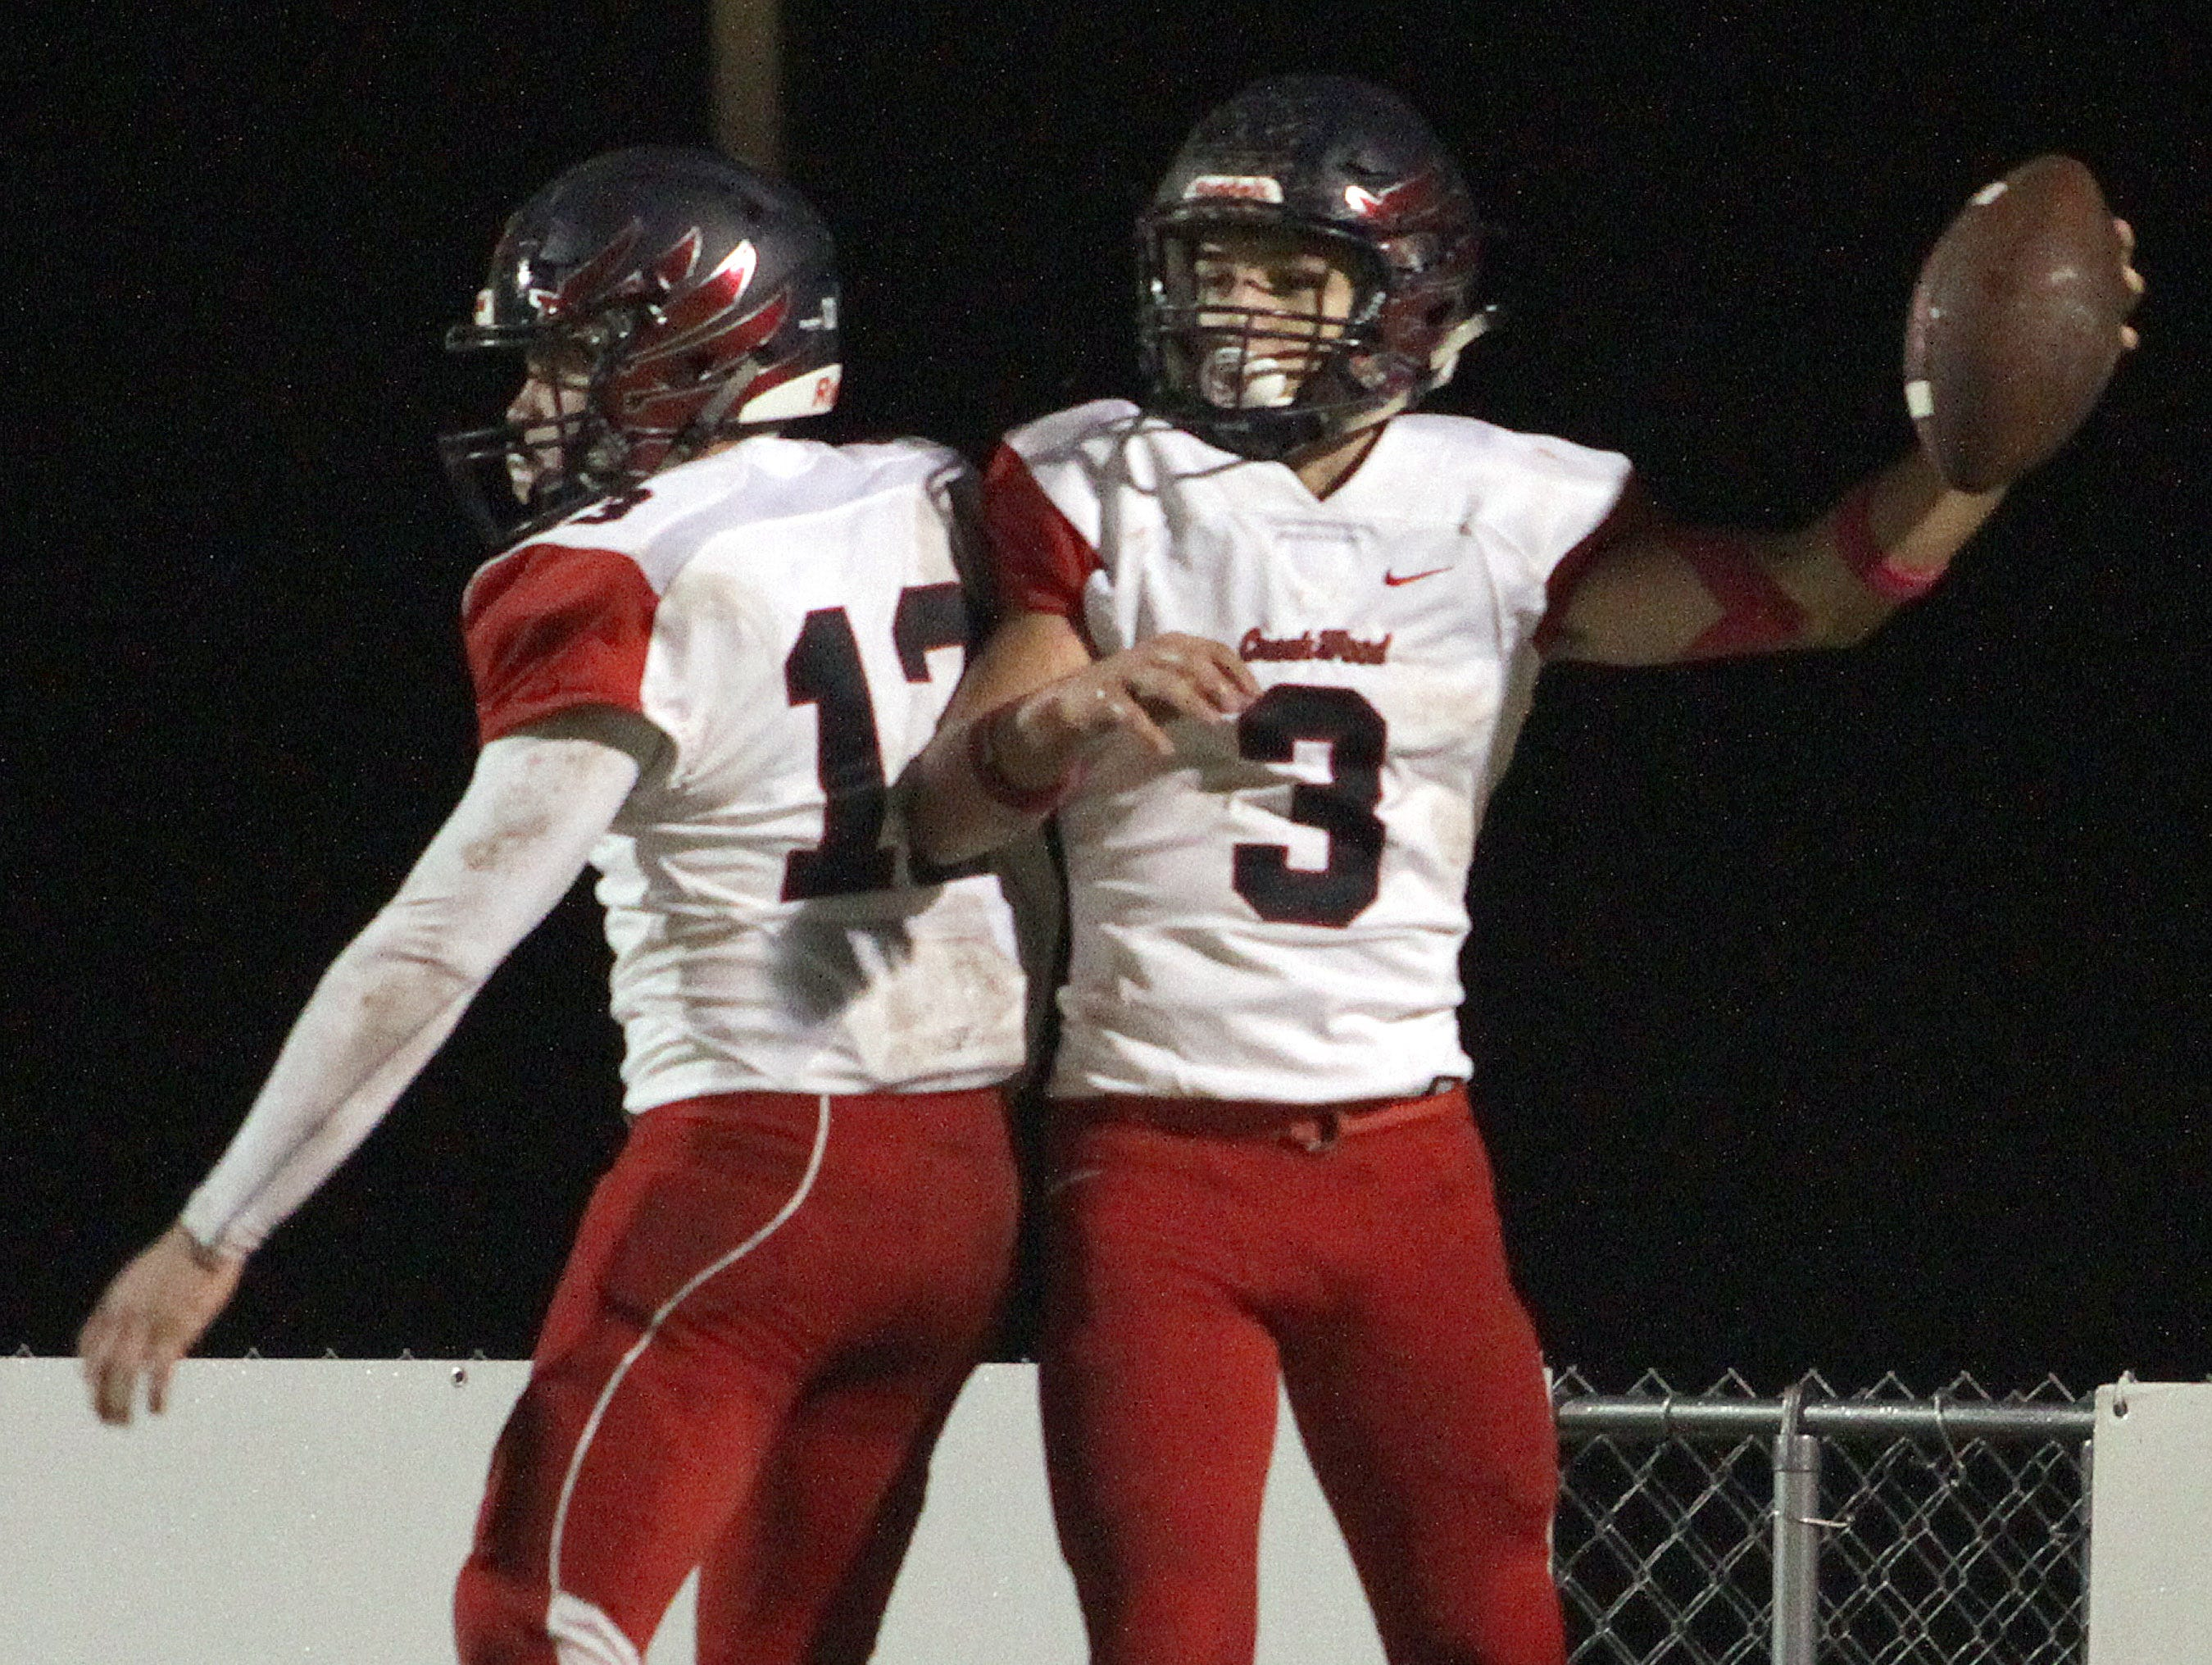 Creek Wood's Brock Veach and Wil Secker celebrate a score against Springfield on Friday, October 26, 2018.